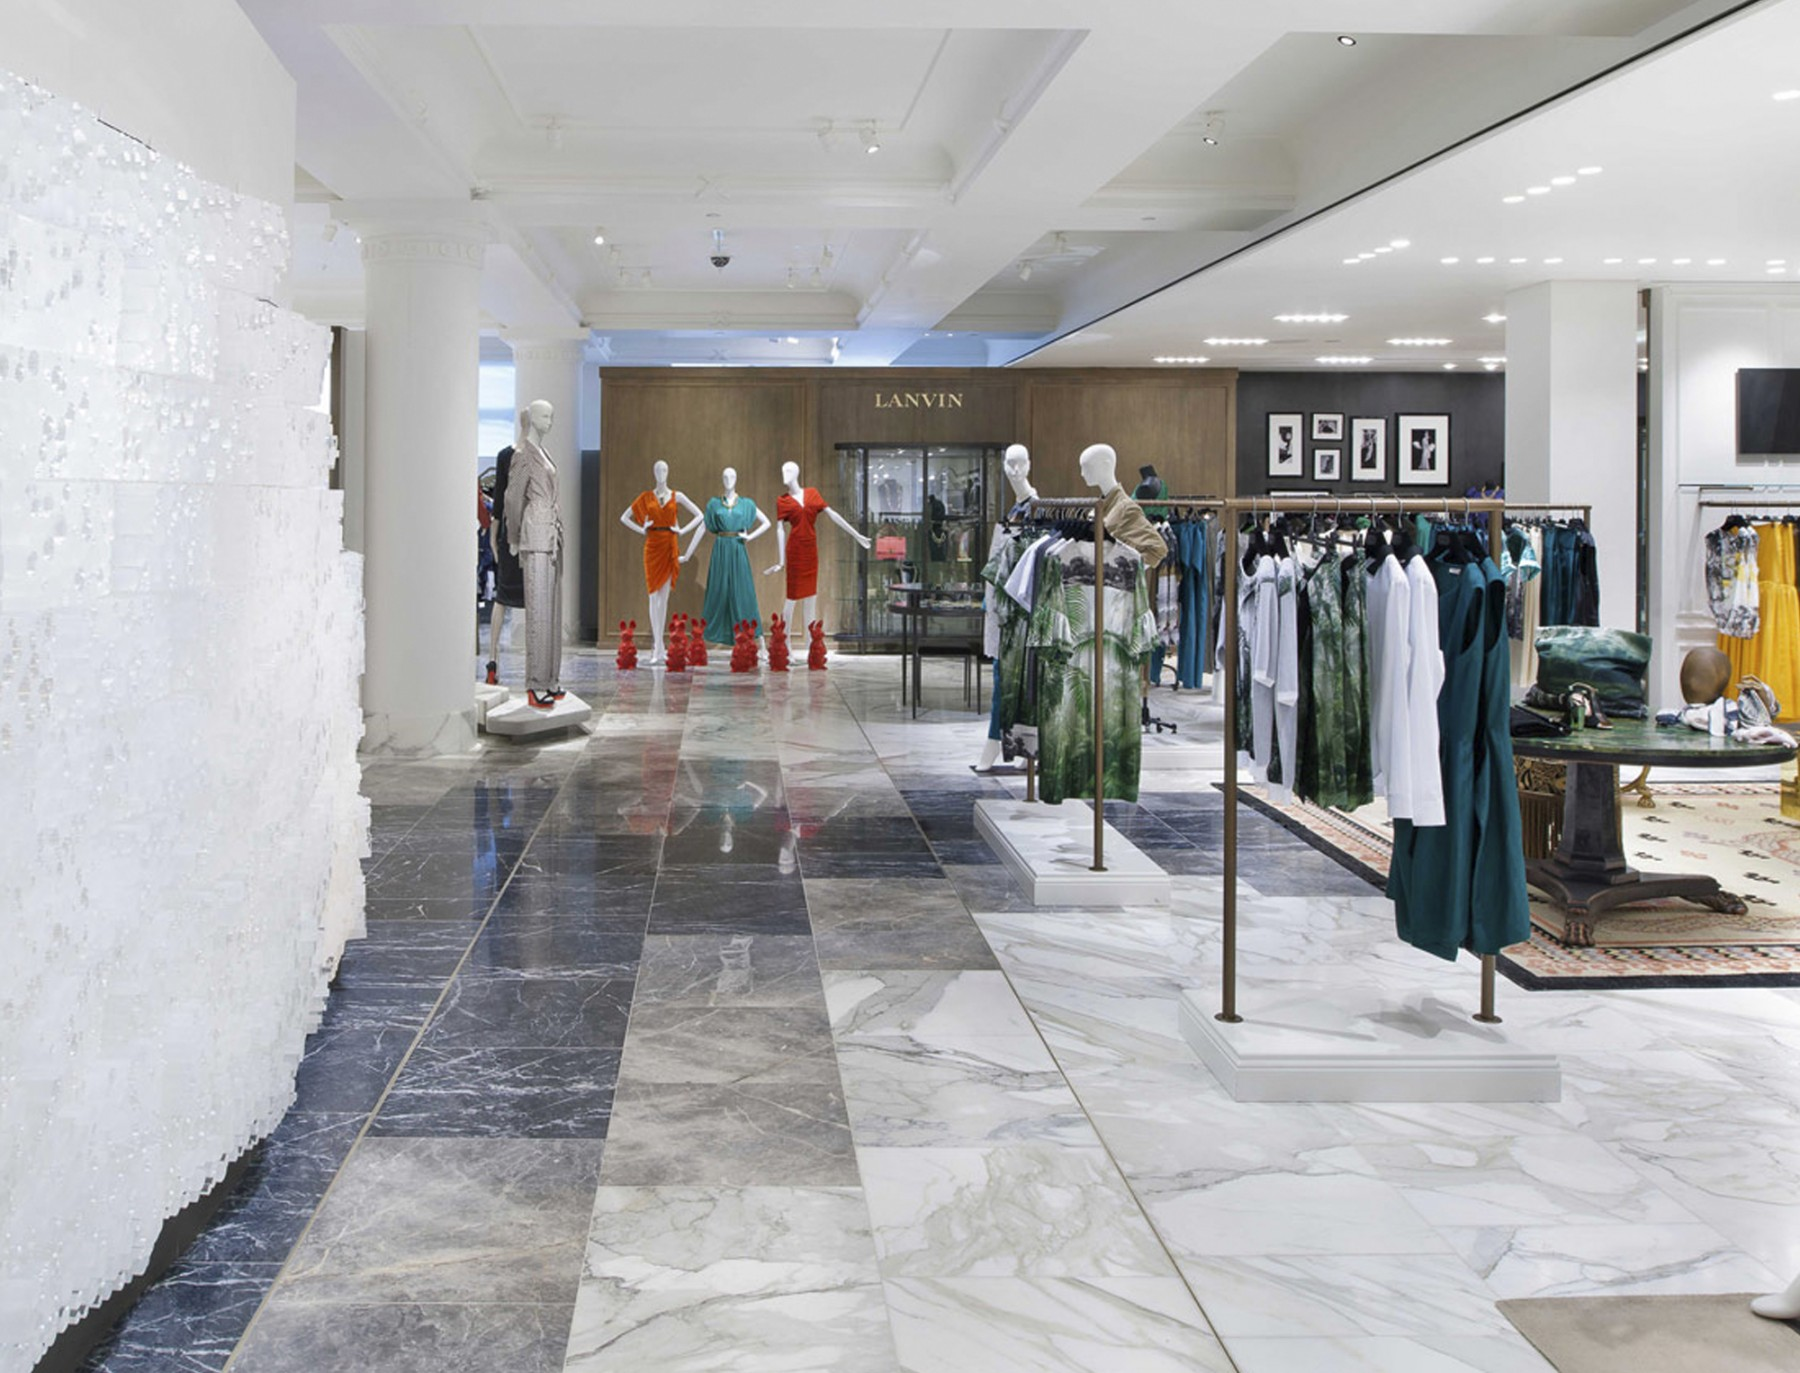 Selfridges-London-designer-fashion-retail-Jamie-Fobert-Architects-shop-marble-floor-womenswear-8-2